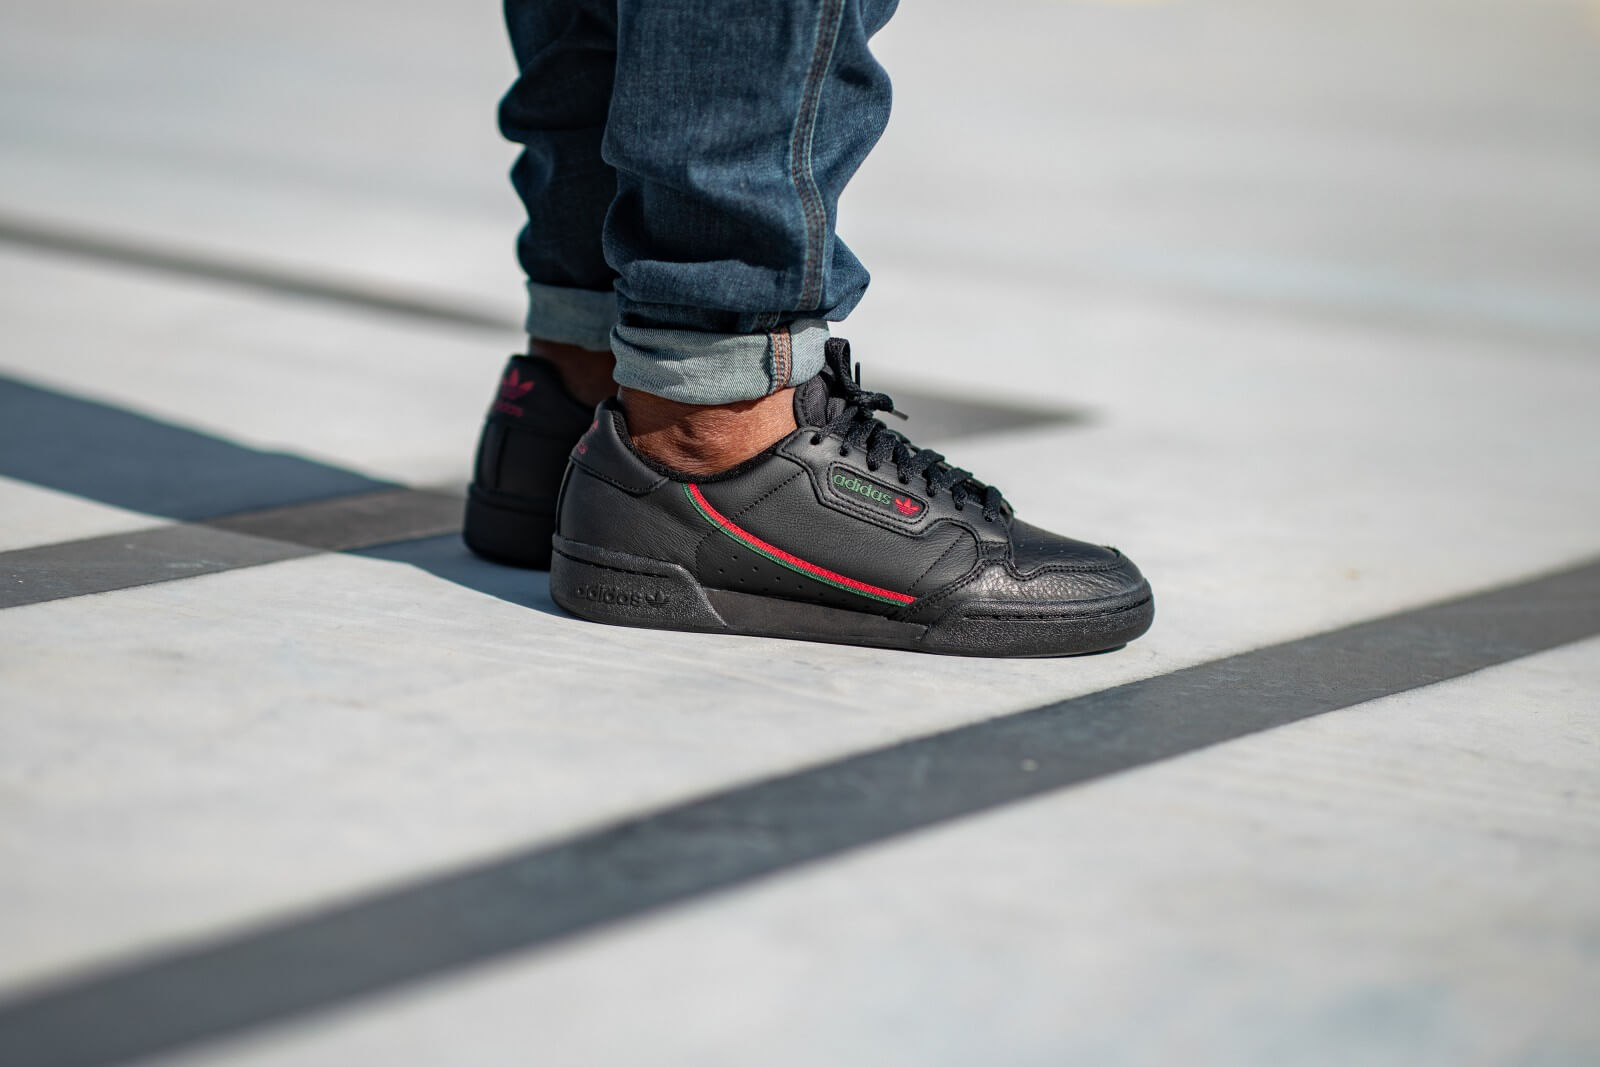 Adidas Continental 80 Core Black/Scarlet-Green